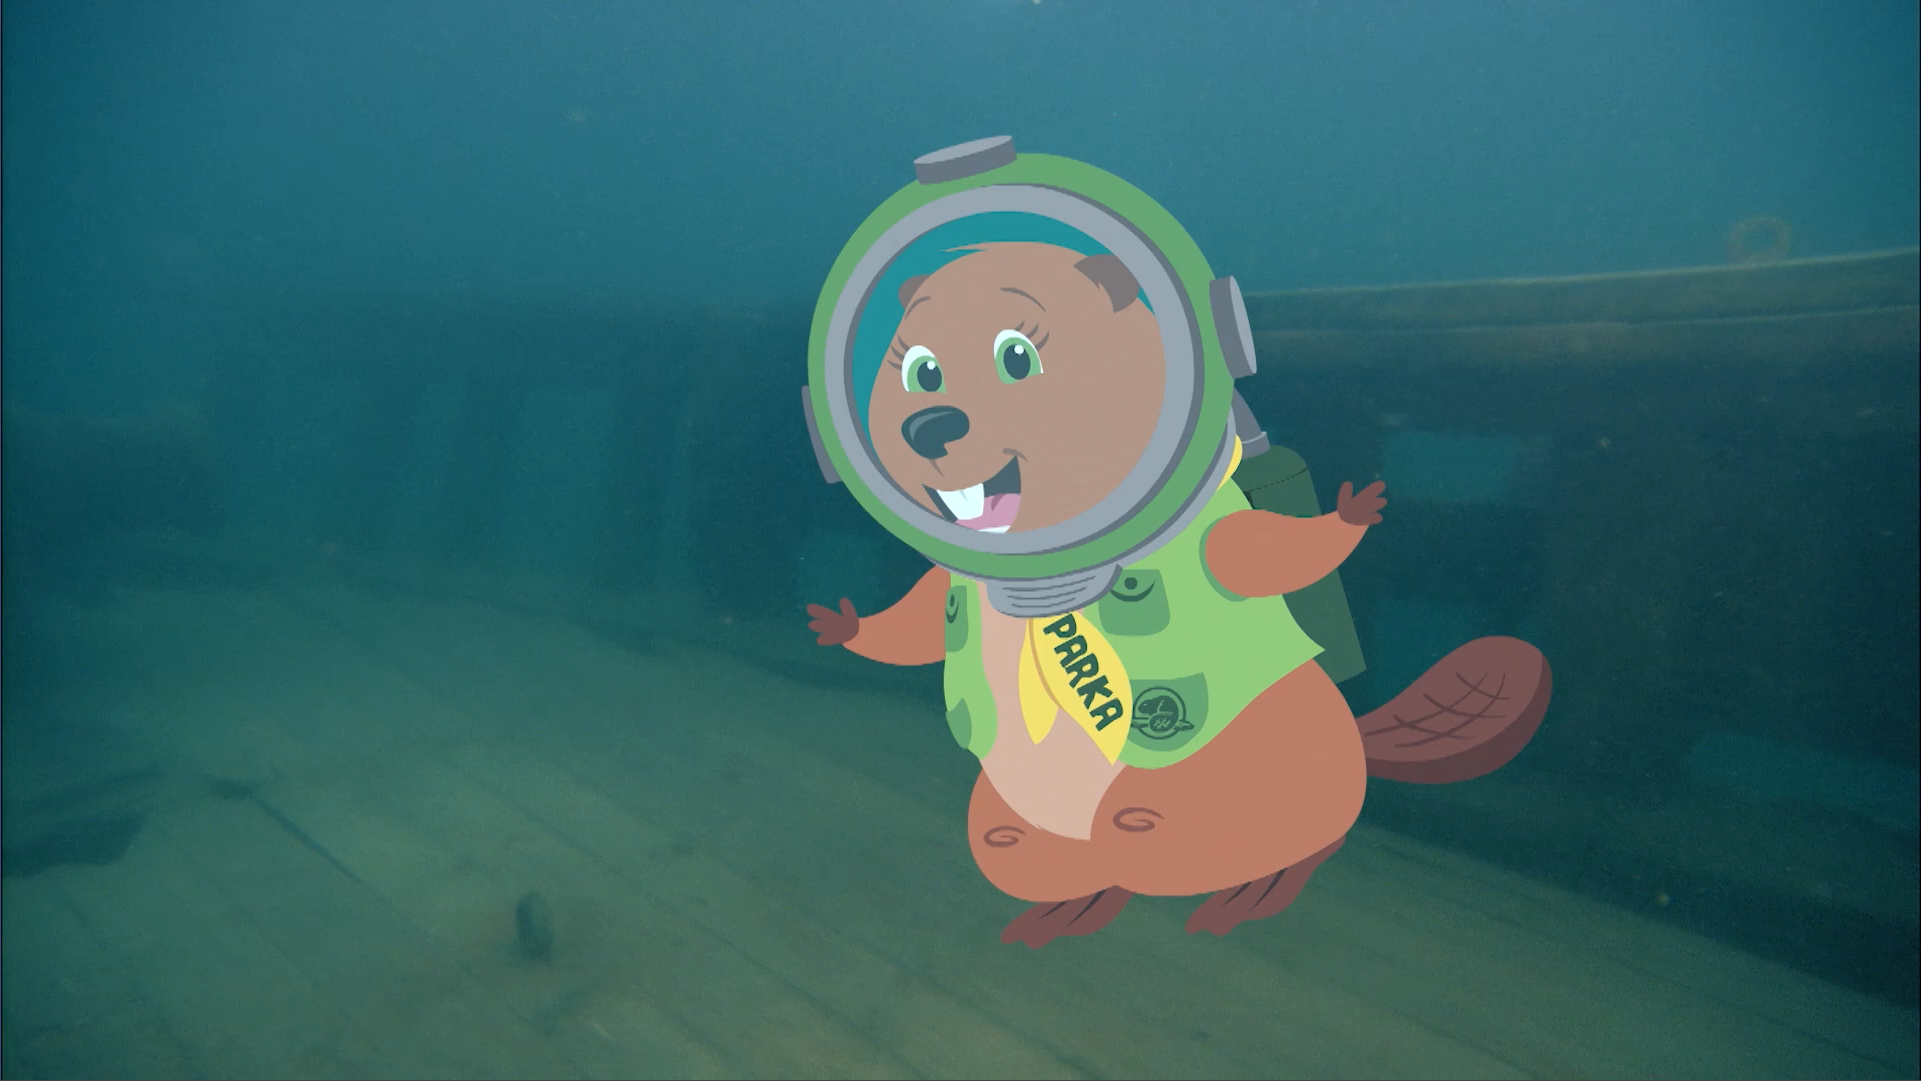 Parka goes deep sea diving and discovers that anemones are animals, not plants, and then finds an old shipwreck.